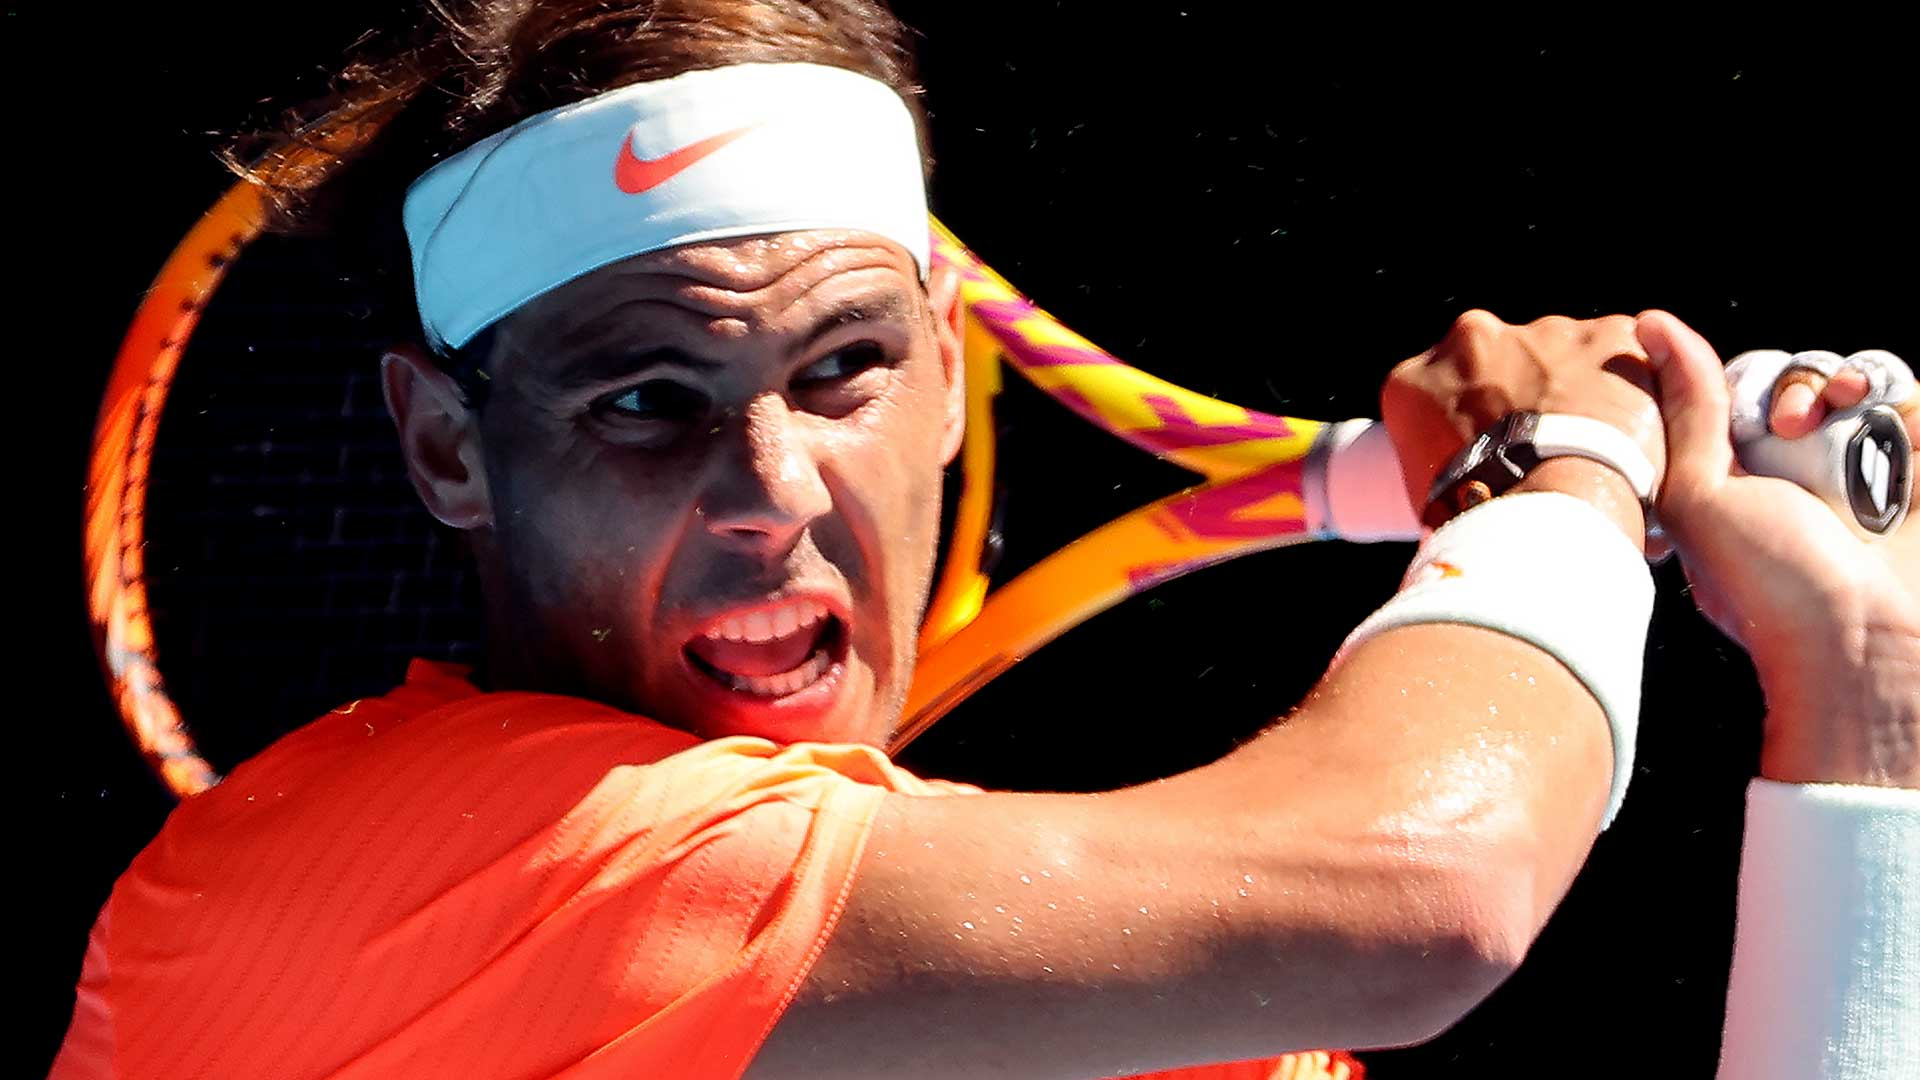 Rafael Nadal: 'There Is Always A Chance To Improve' - Australian Open 2021 Reaction - ATP Tour